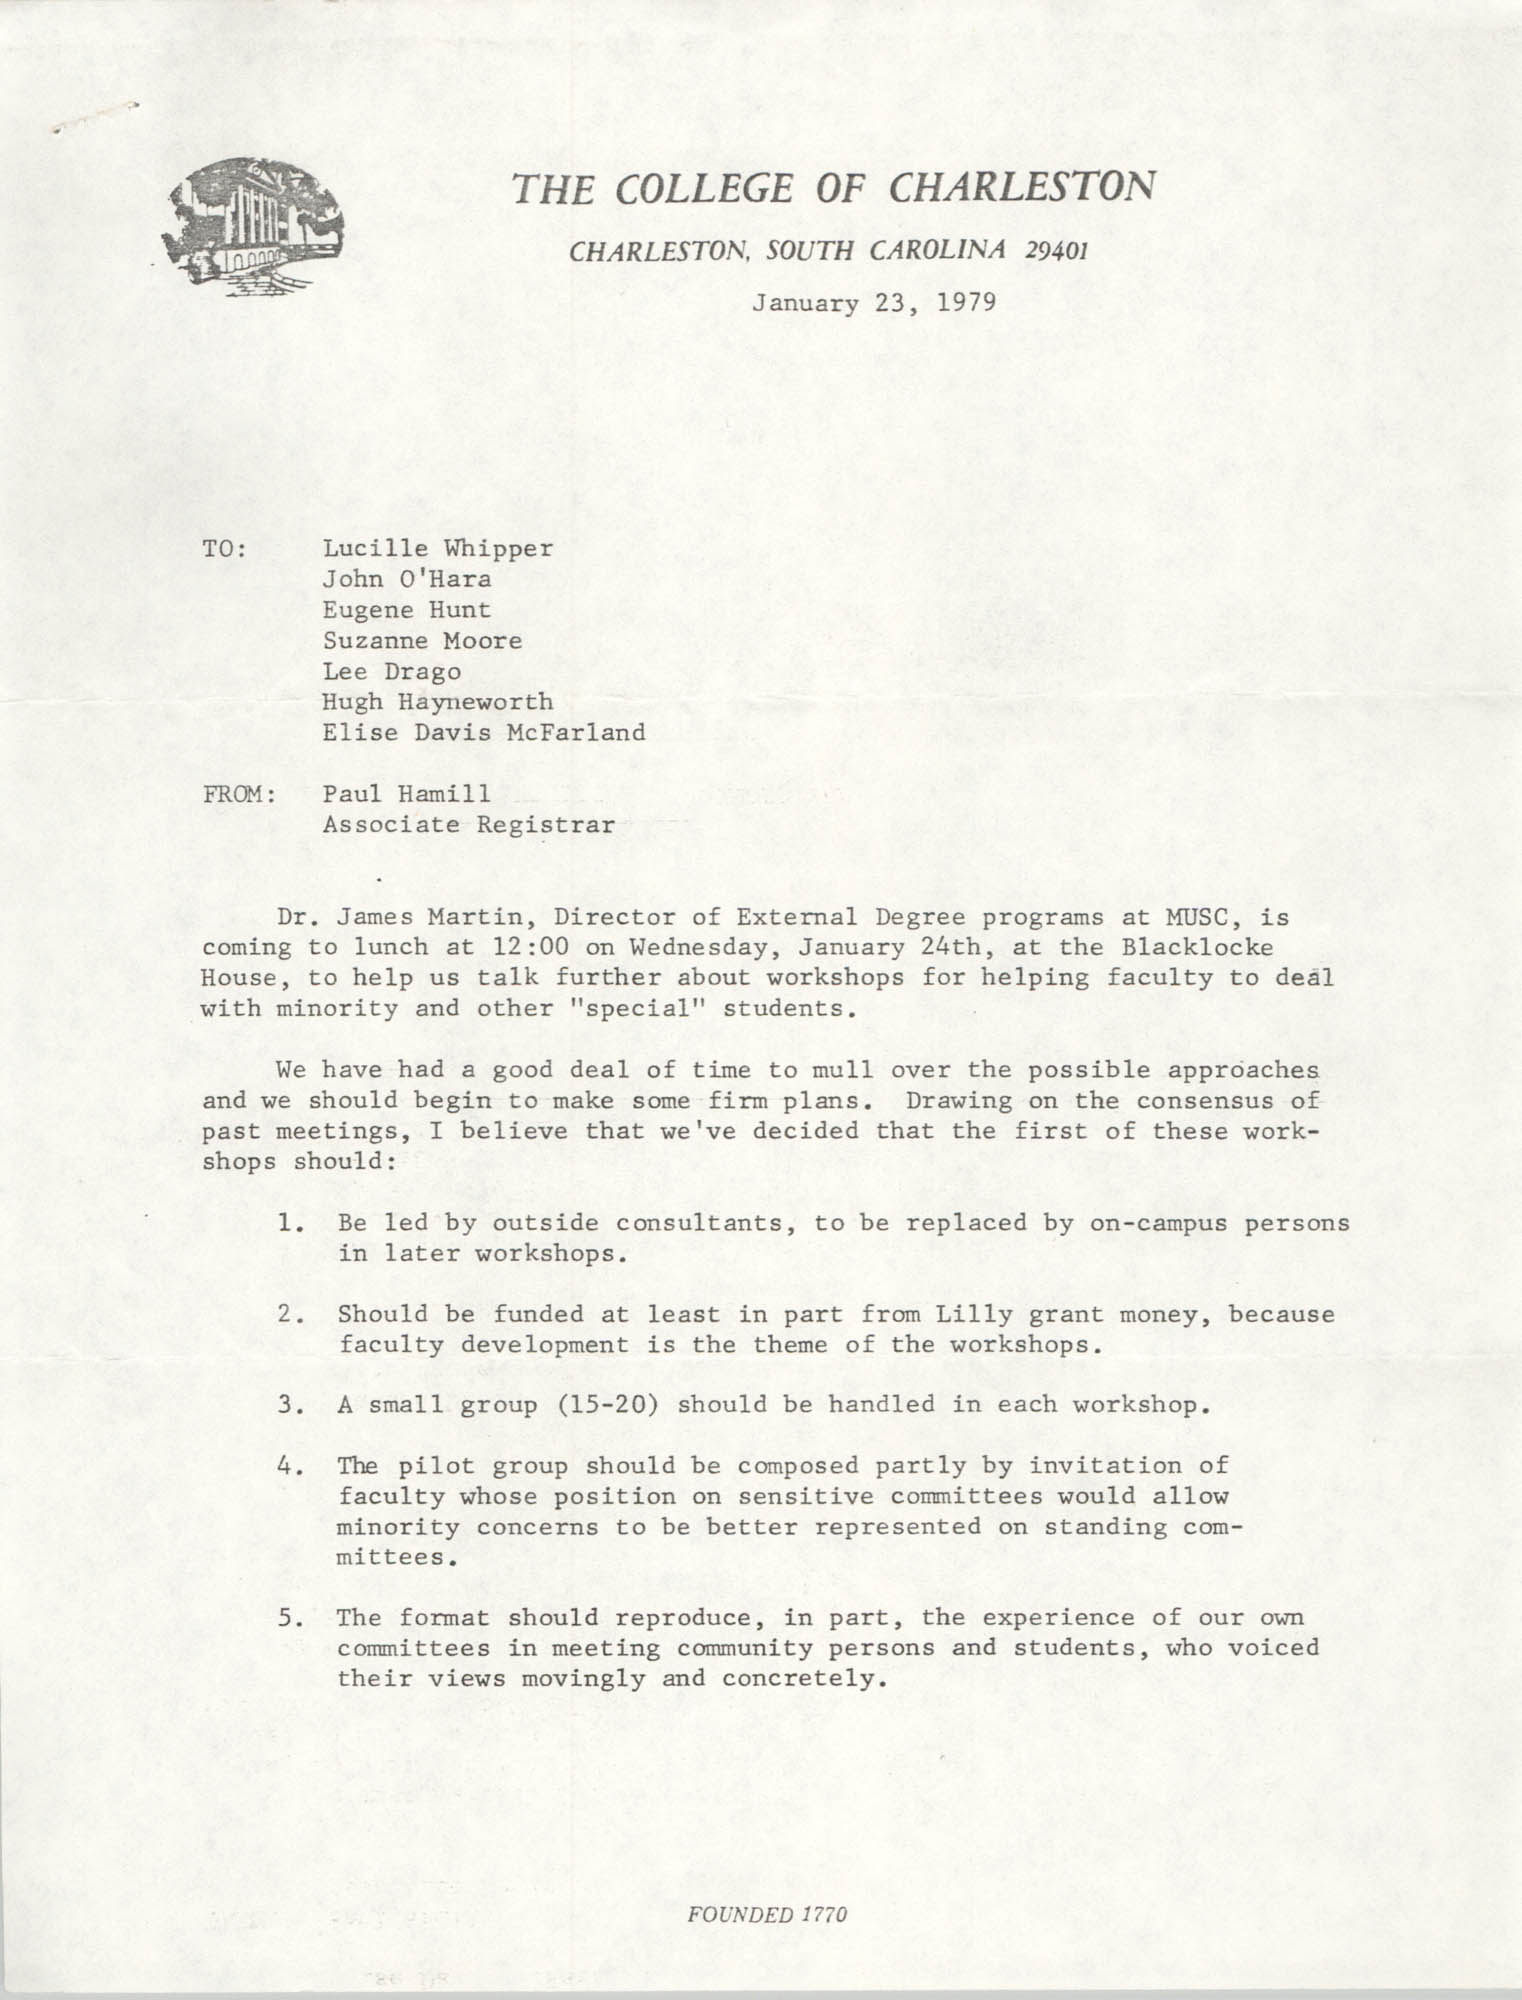 College of Charleston Memorandum, January 23, 1979